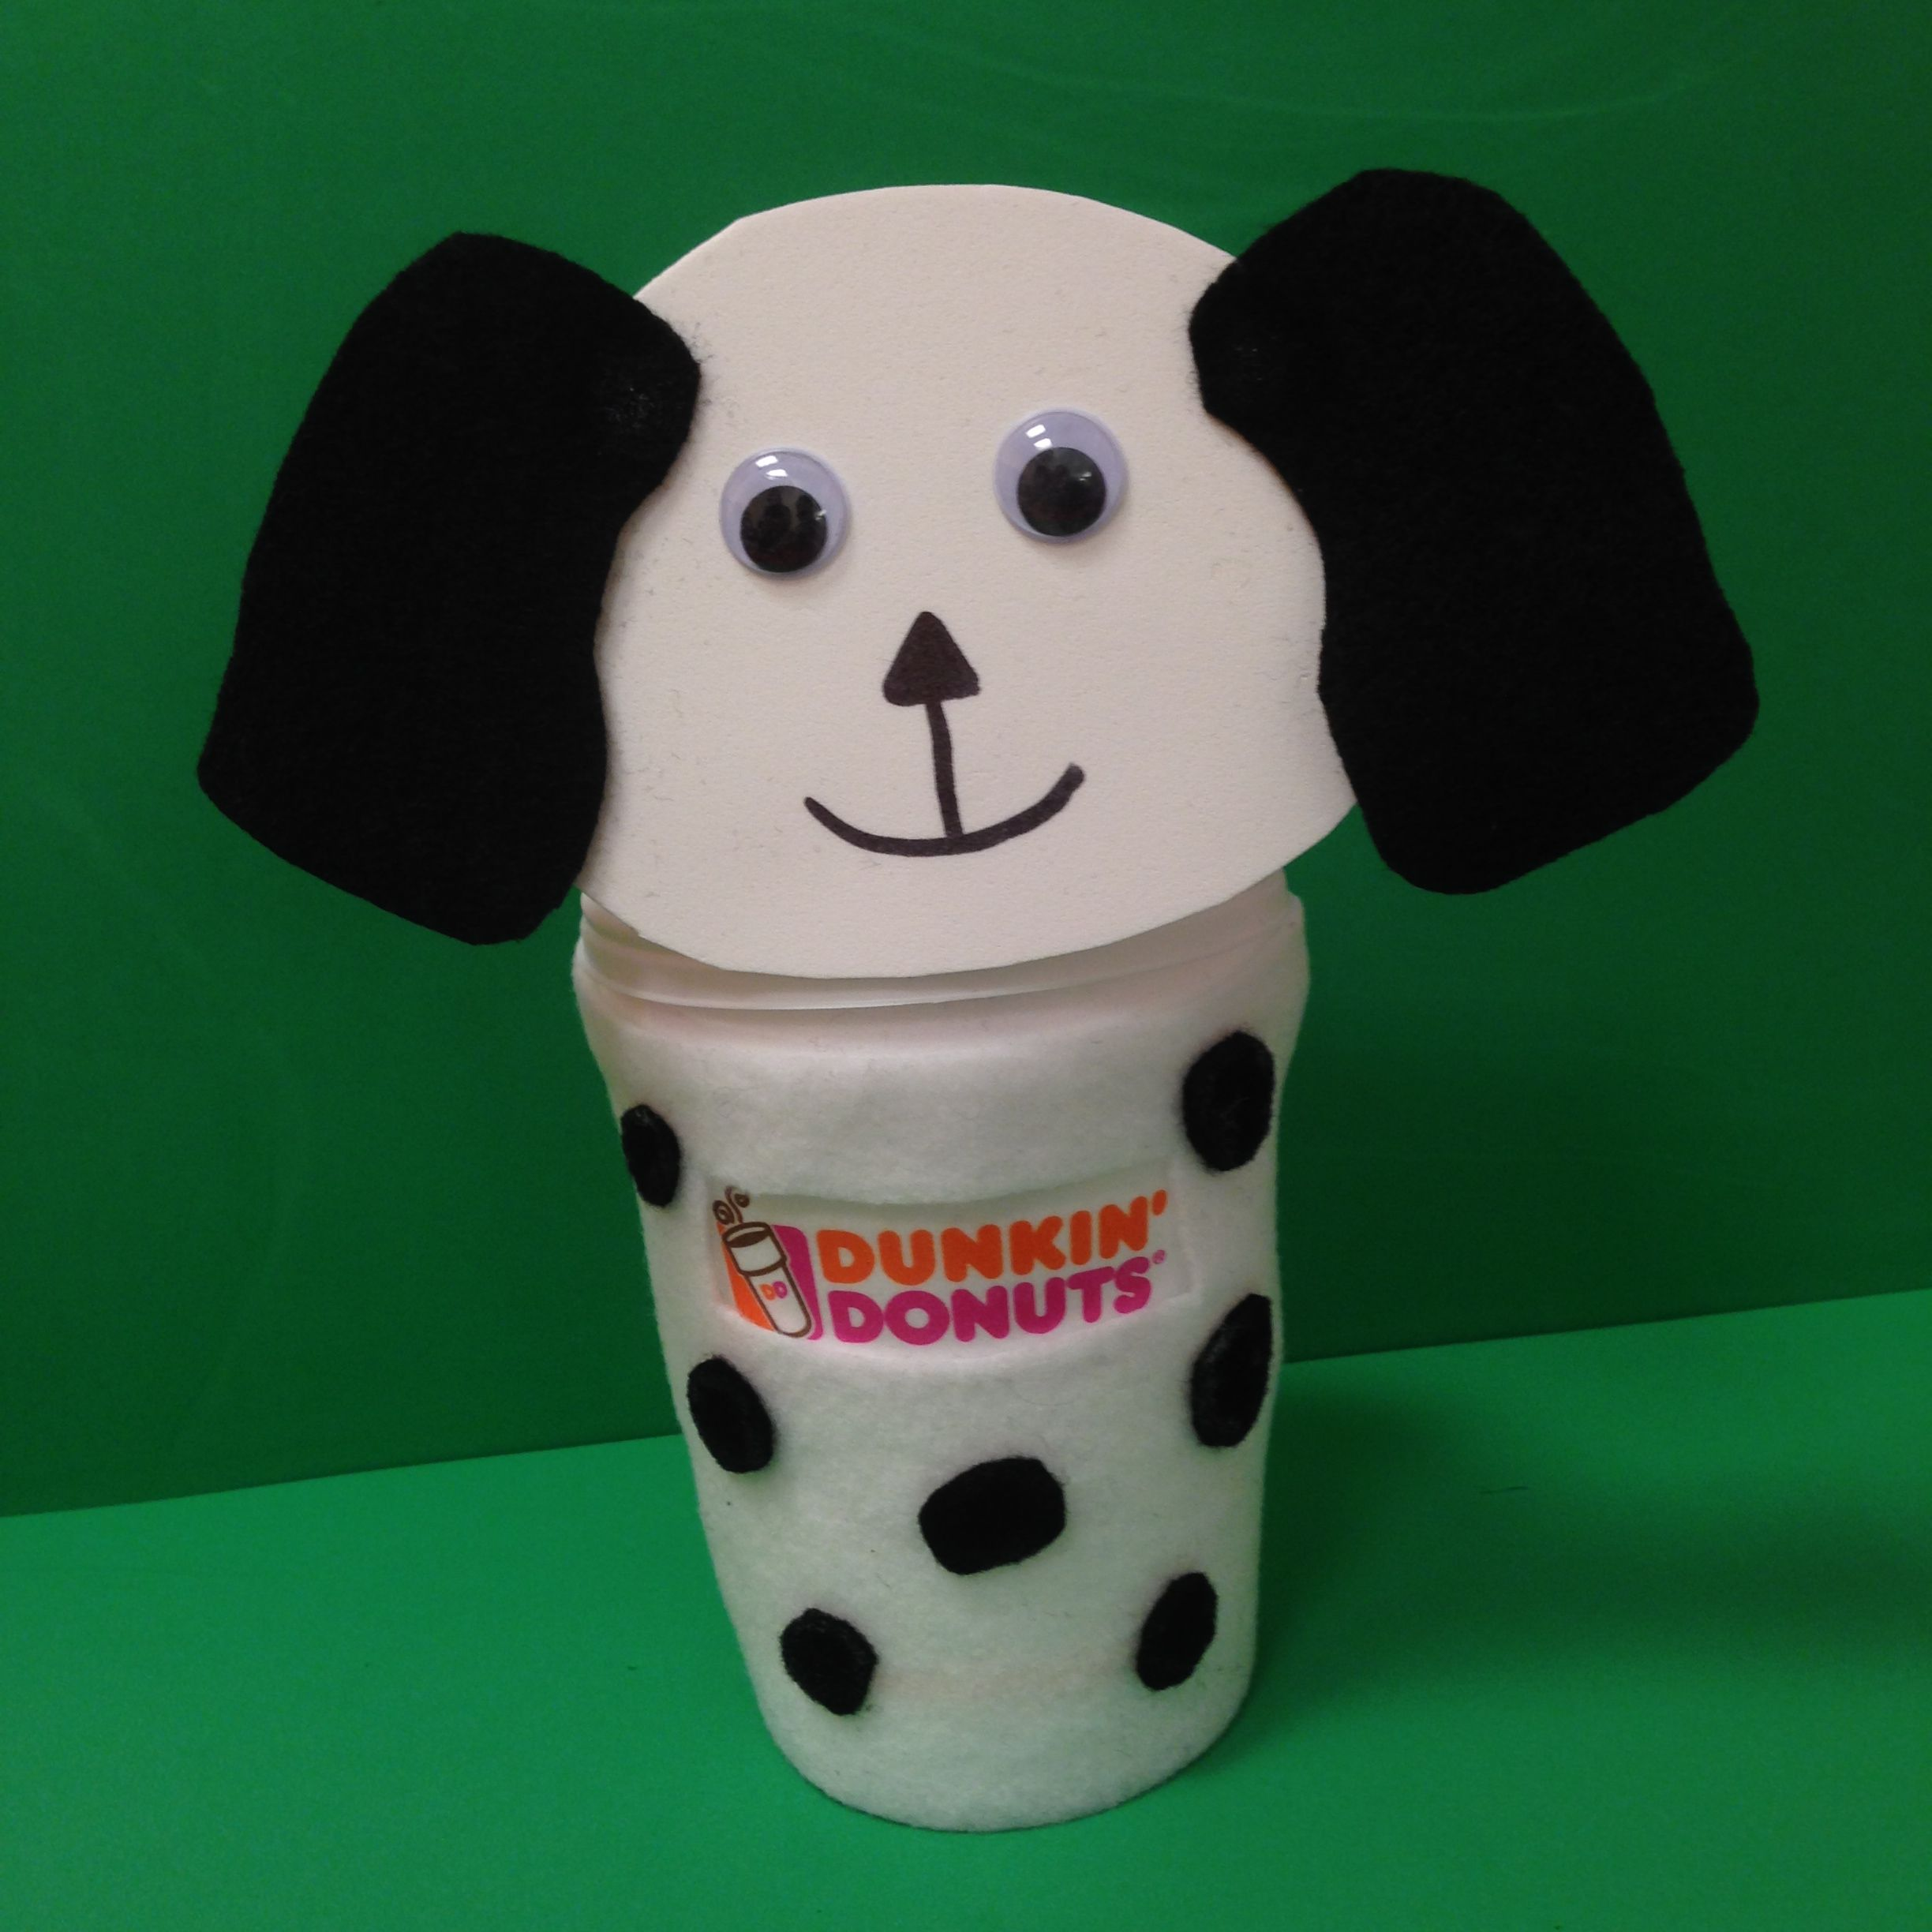 Dress up your DD Coffee cup for Halloween! Tweet us or